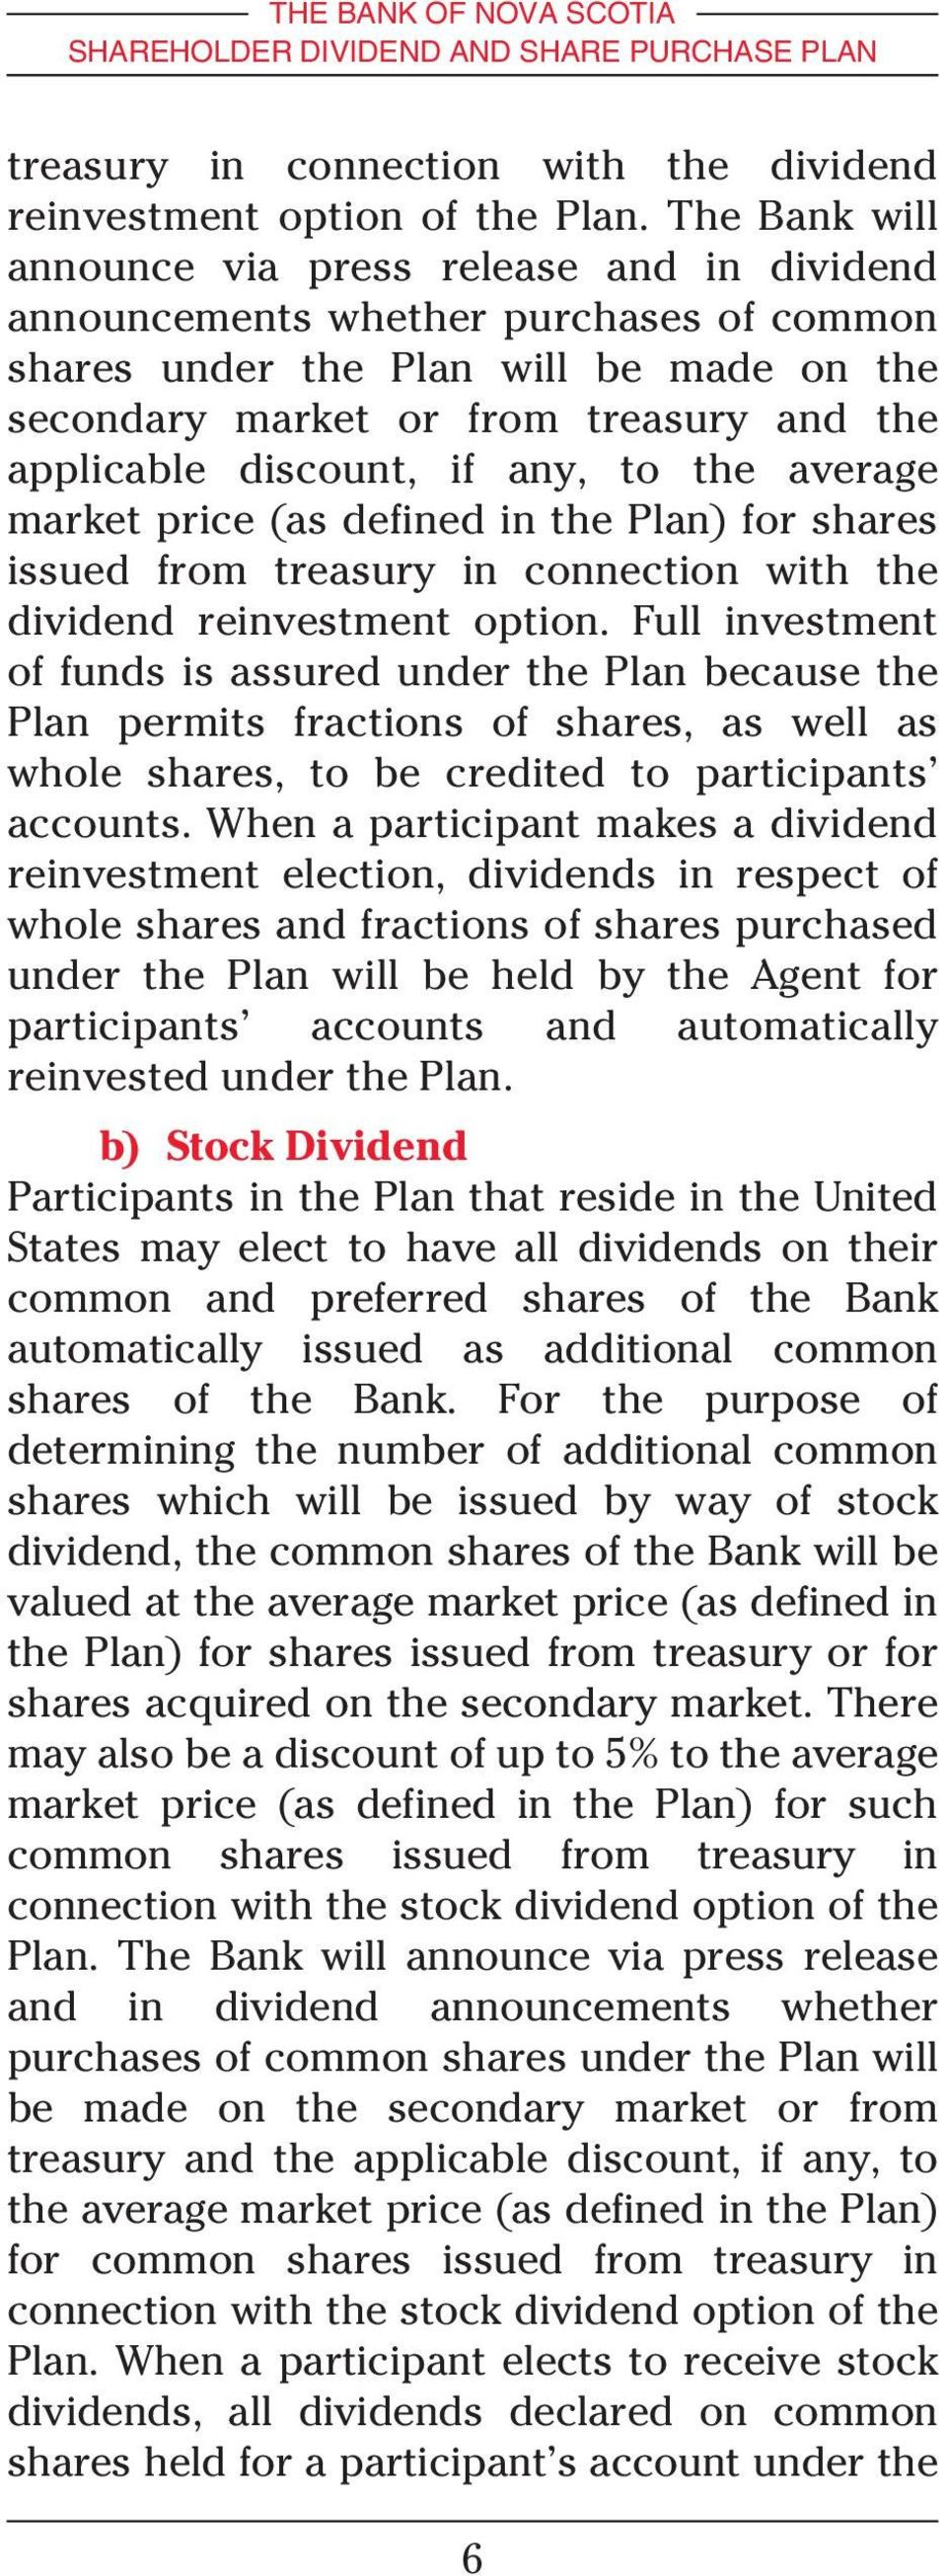 discount, if any, to the average market price (as defined in the Plan) for shares issued from treasury in connection with the dividend reinvestment option.